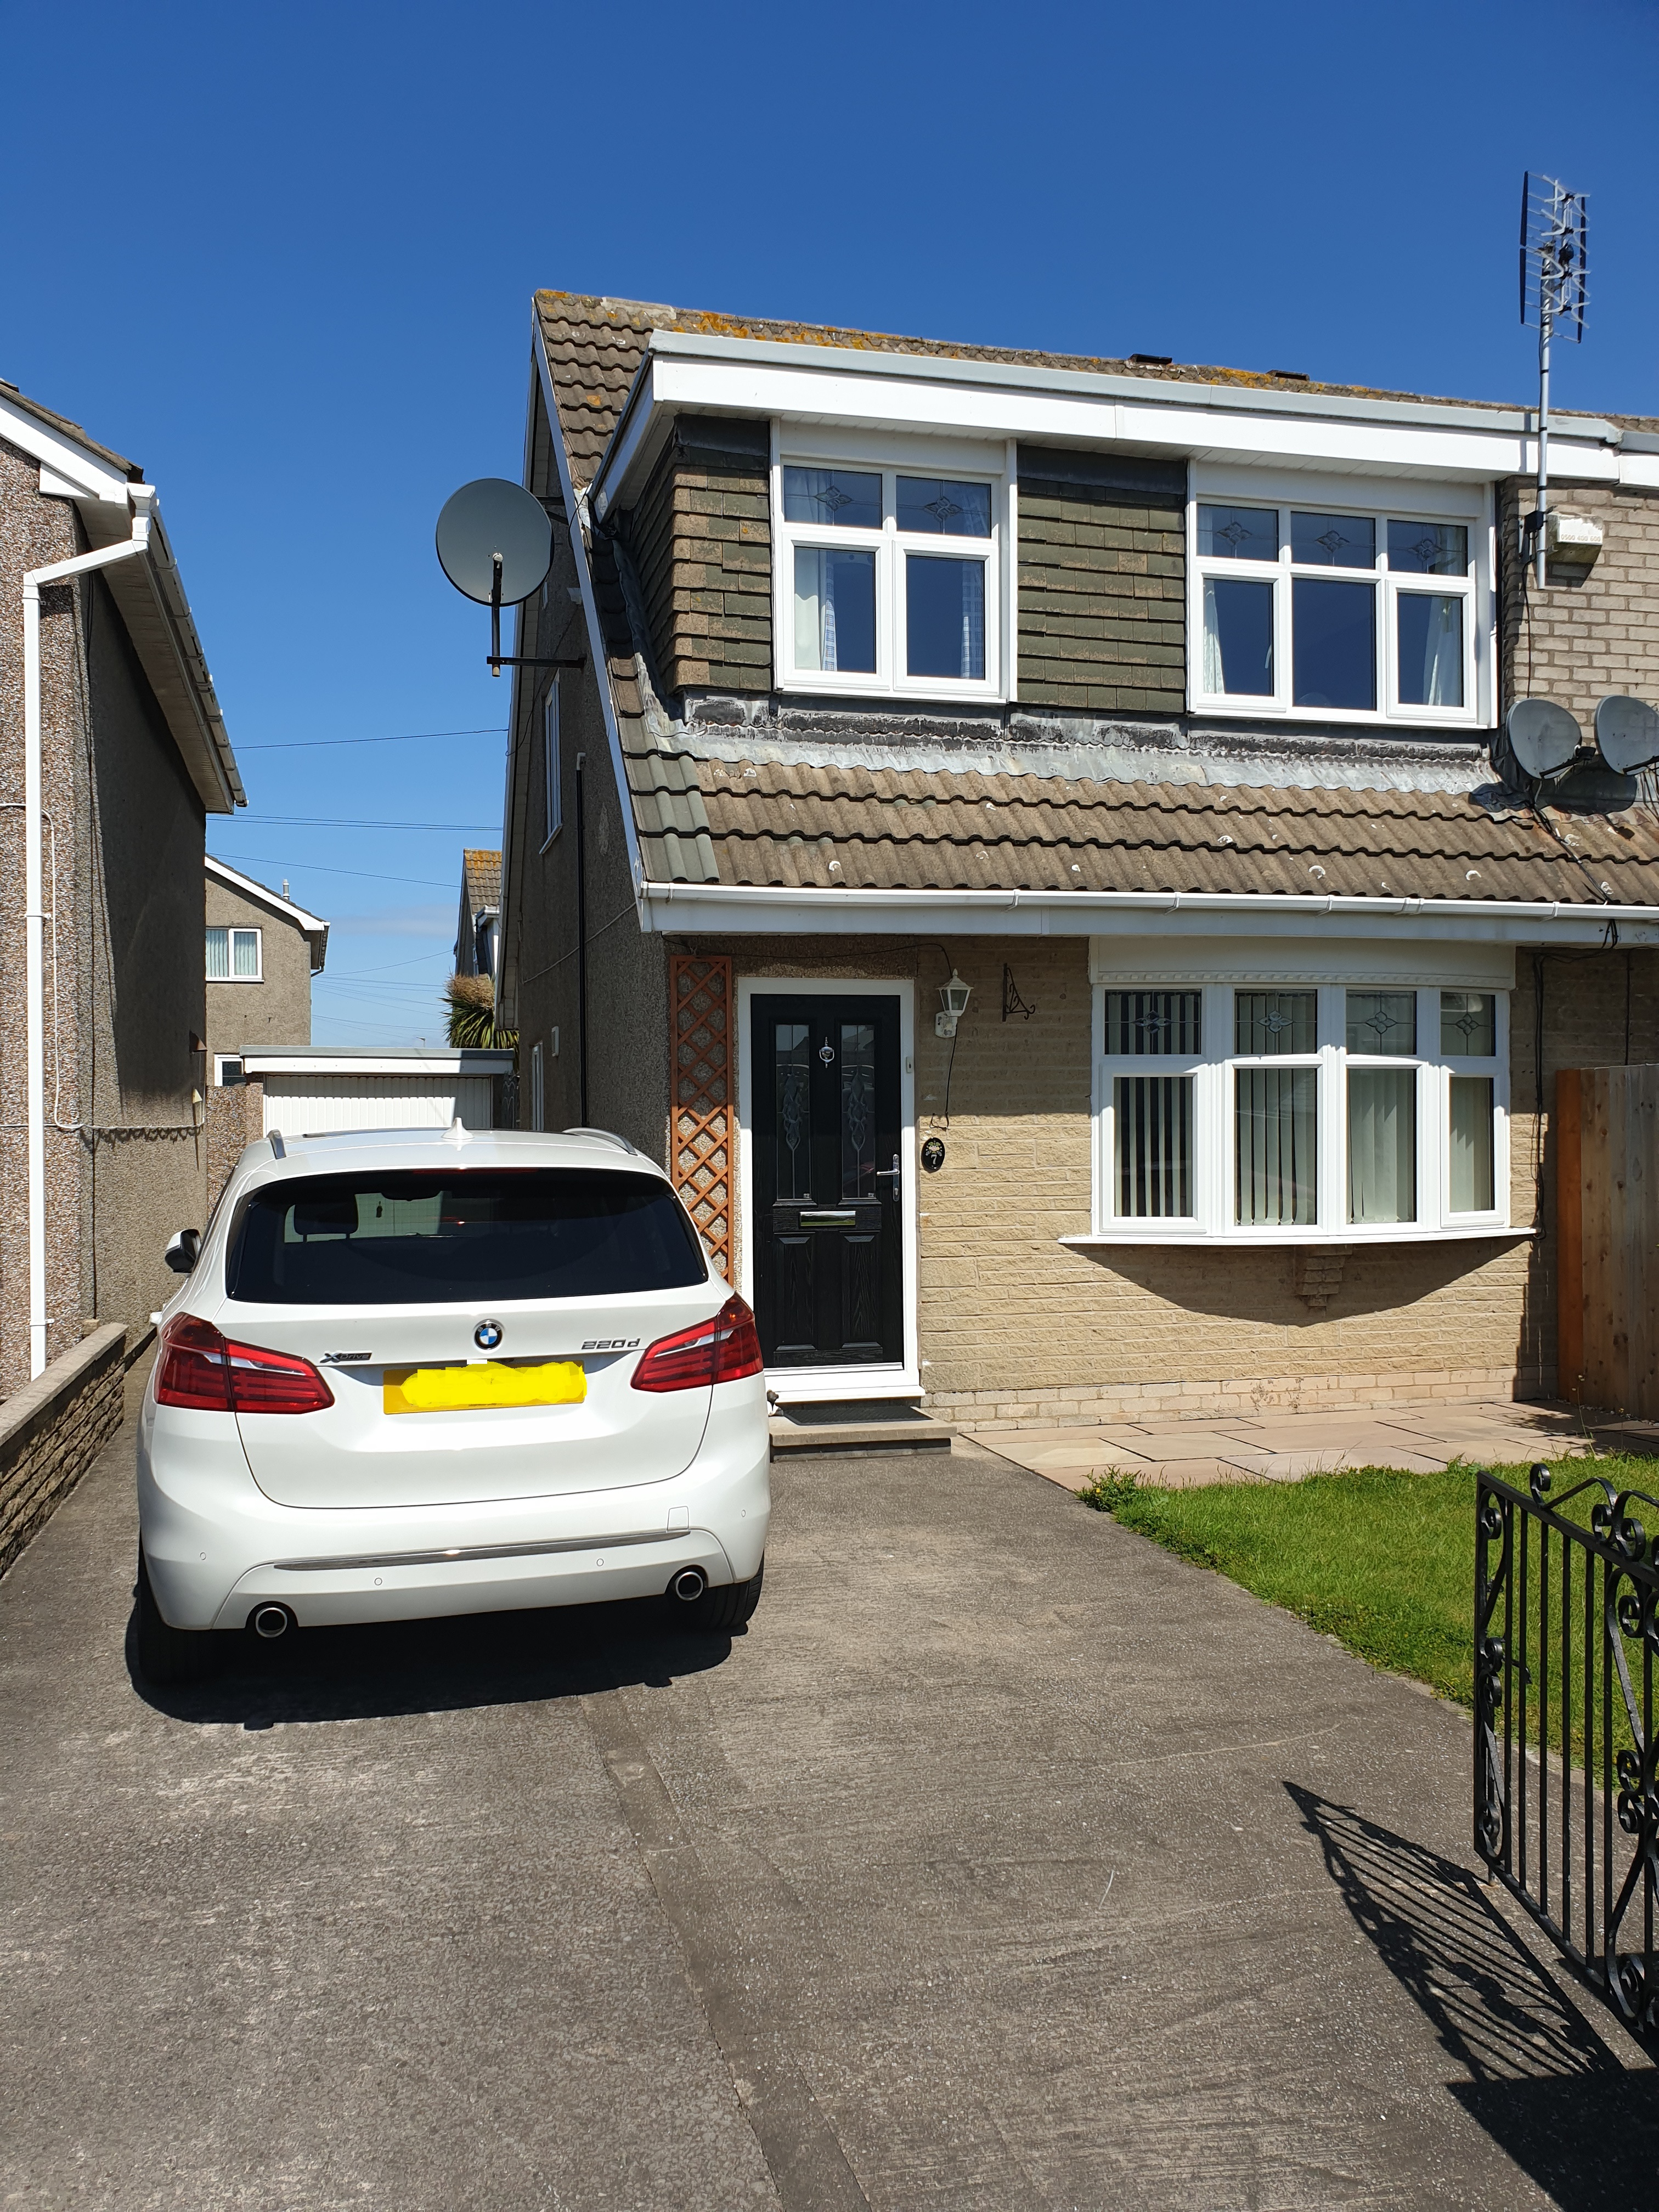 7 Leighton Drive, Walney, LA14 3RS